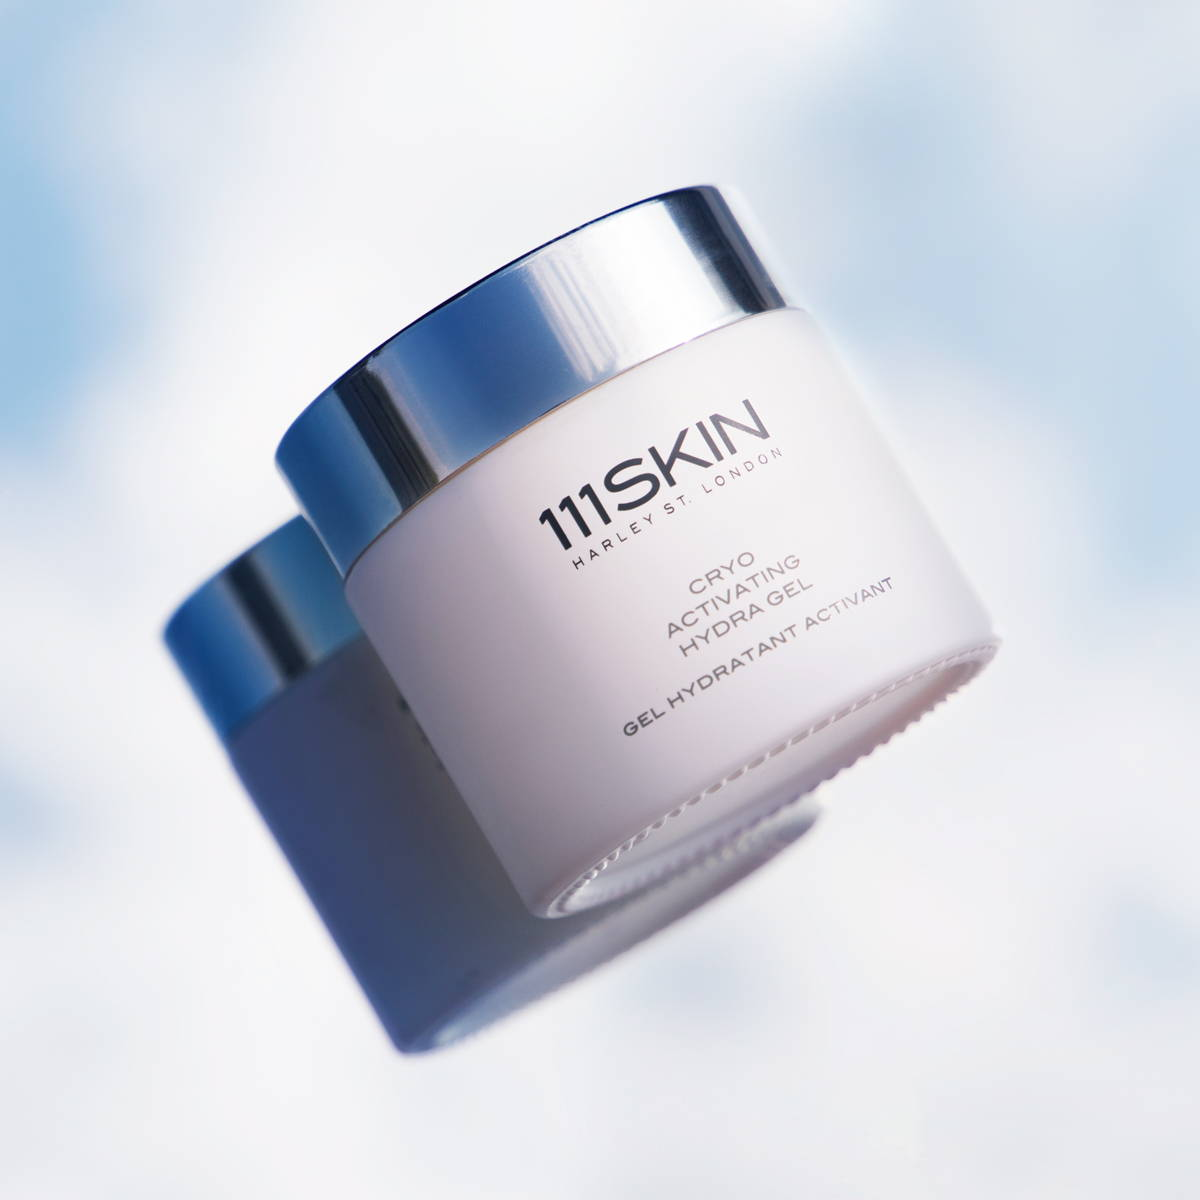 Cryo Activating Hydra Gel Complimentary